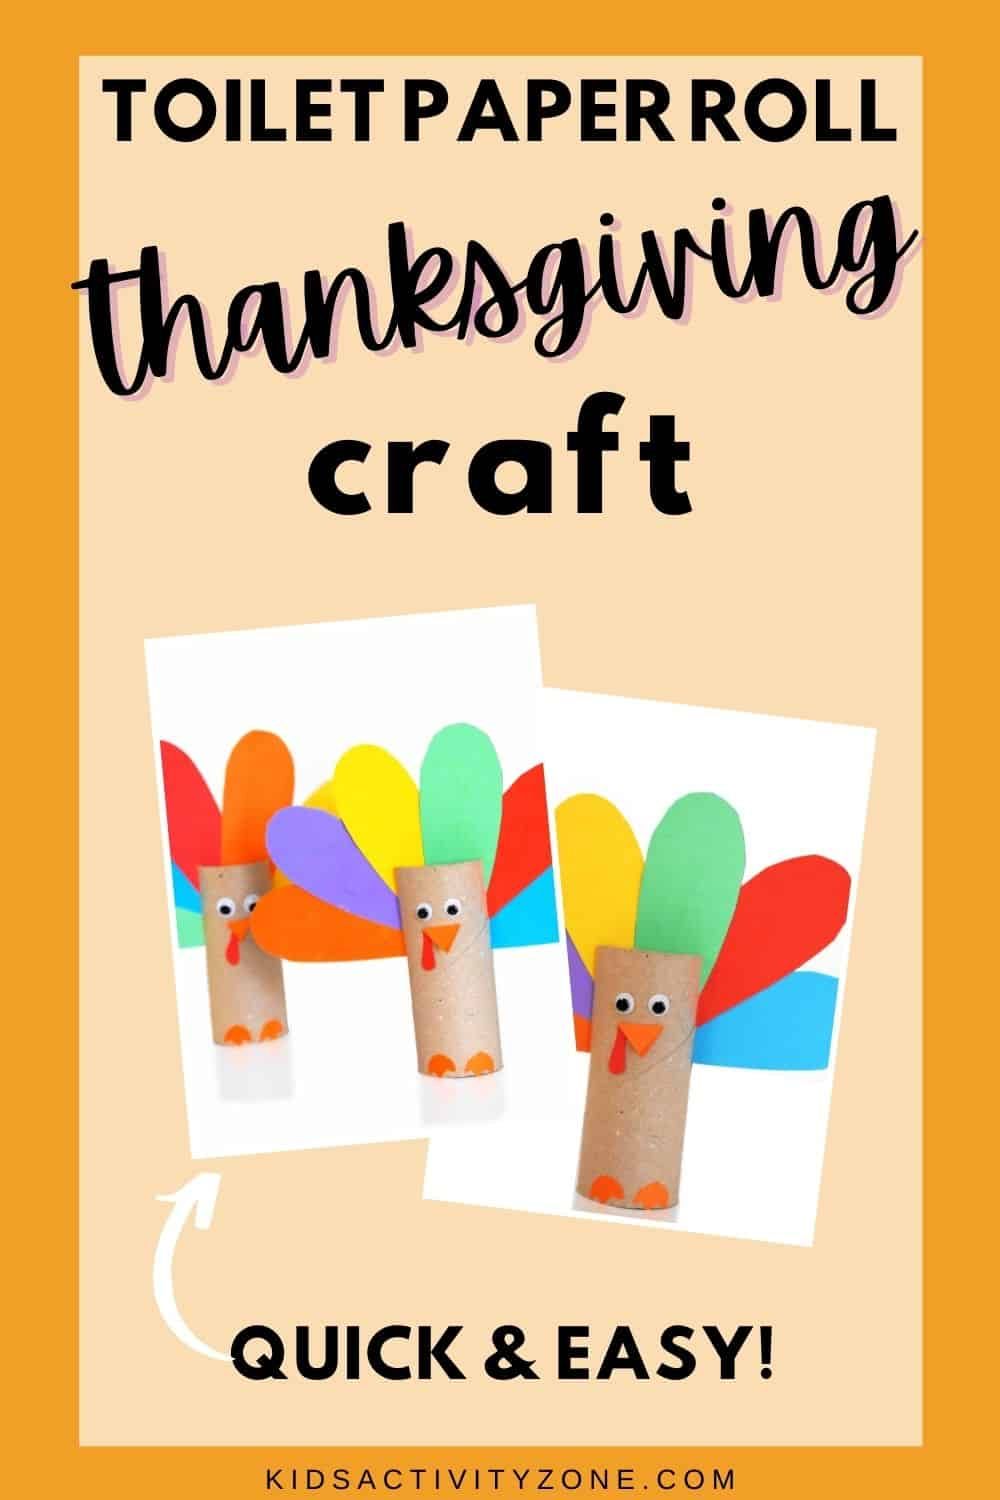 If you need an easy, fun Thanksgiving craft this cute Toilet Paper Roll Turkey craft is what you are looking for. Kids will love cutting out the feathers in different colors of construction paper and then assembling the turkey!